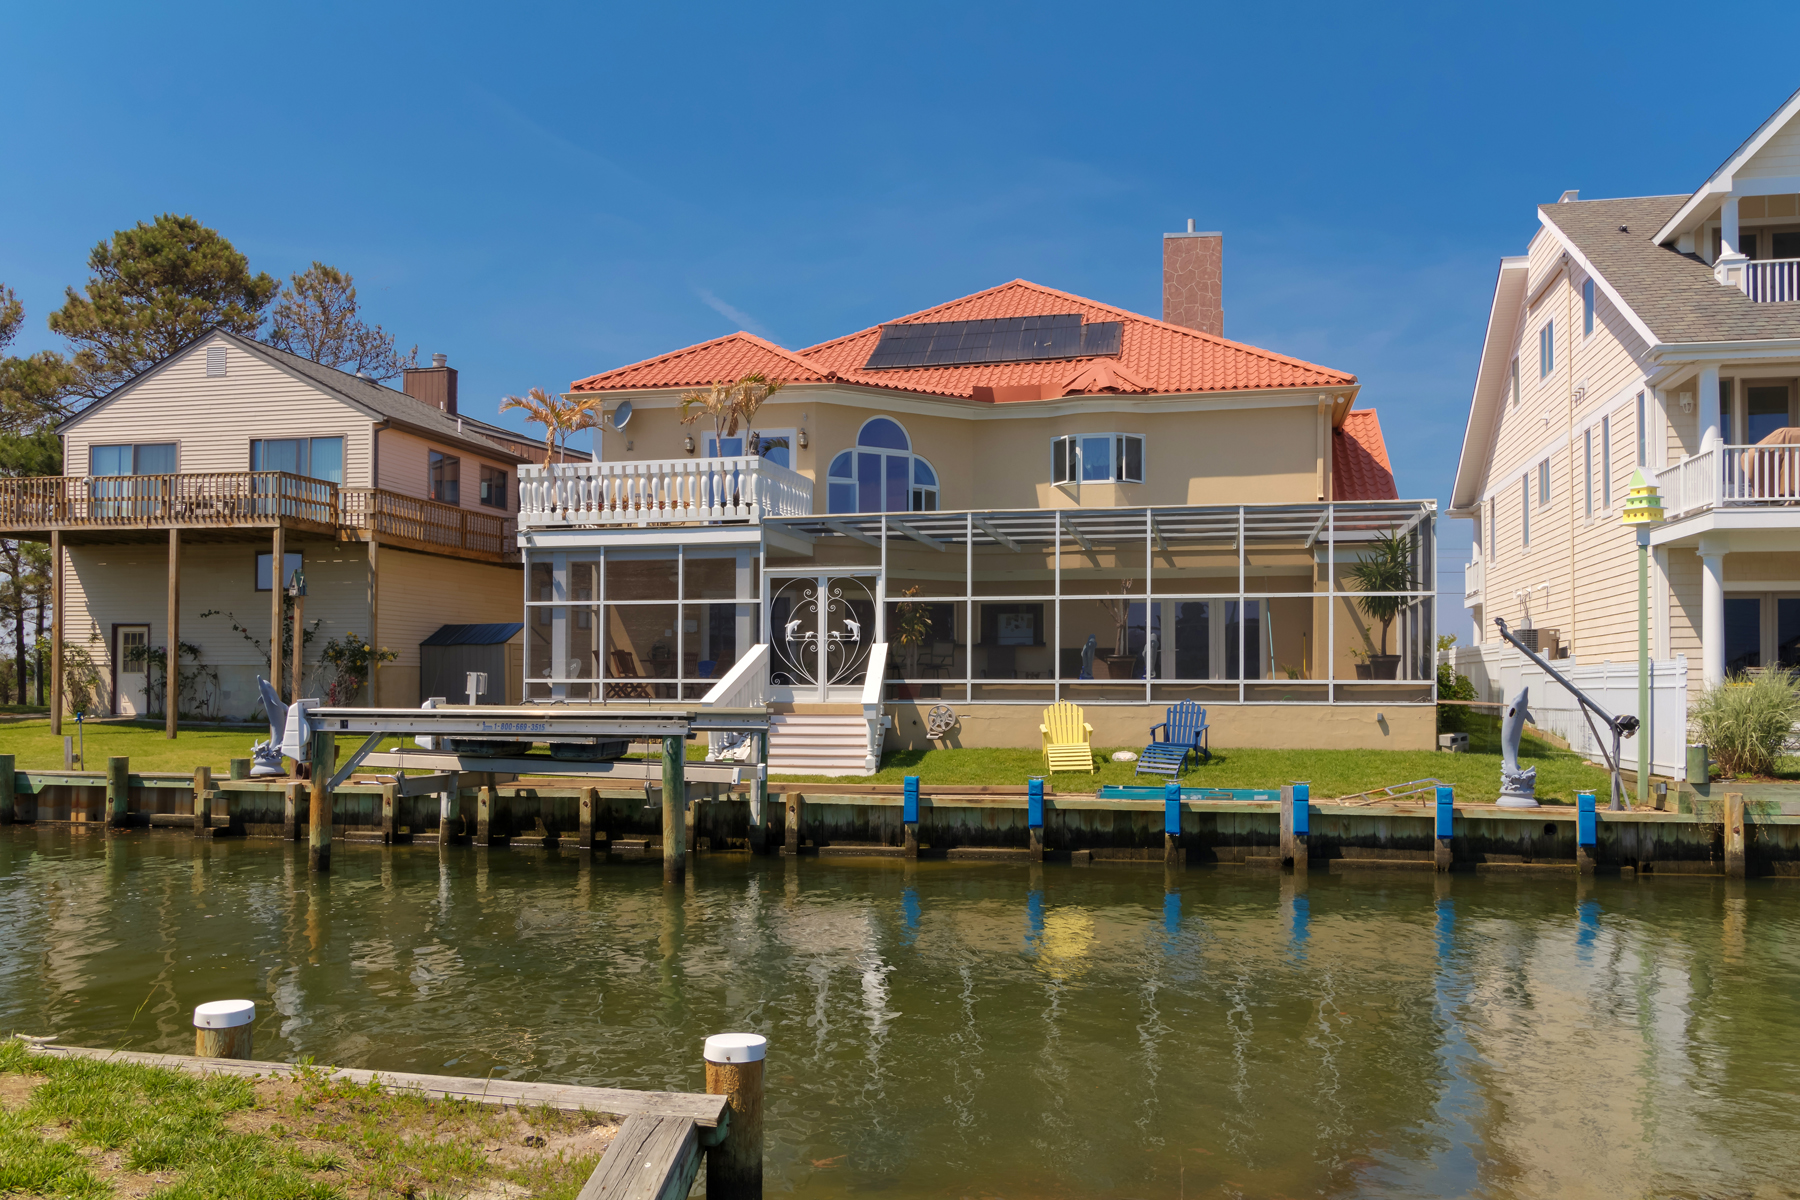 Single Family Home for Sale at 12608 Selsey Rd, Ocean City, MD 21842 Ocean City, Maryland, 21842 United States